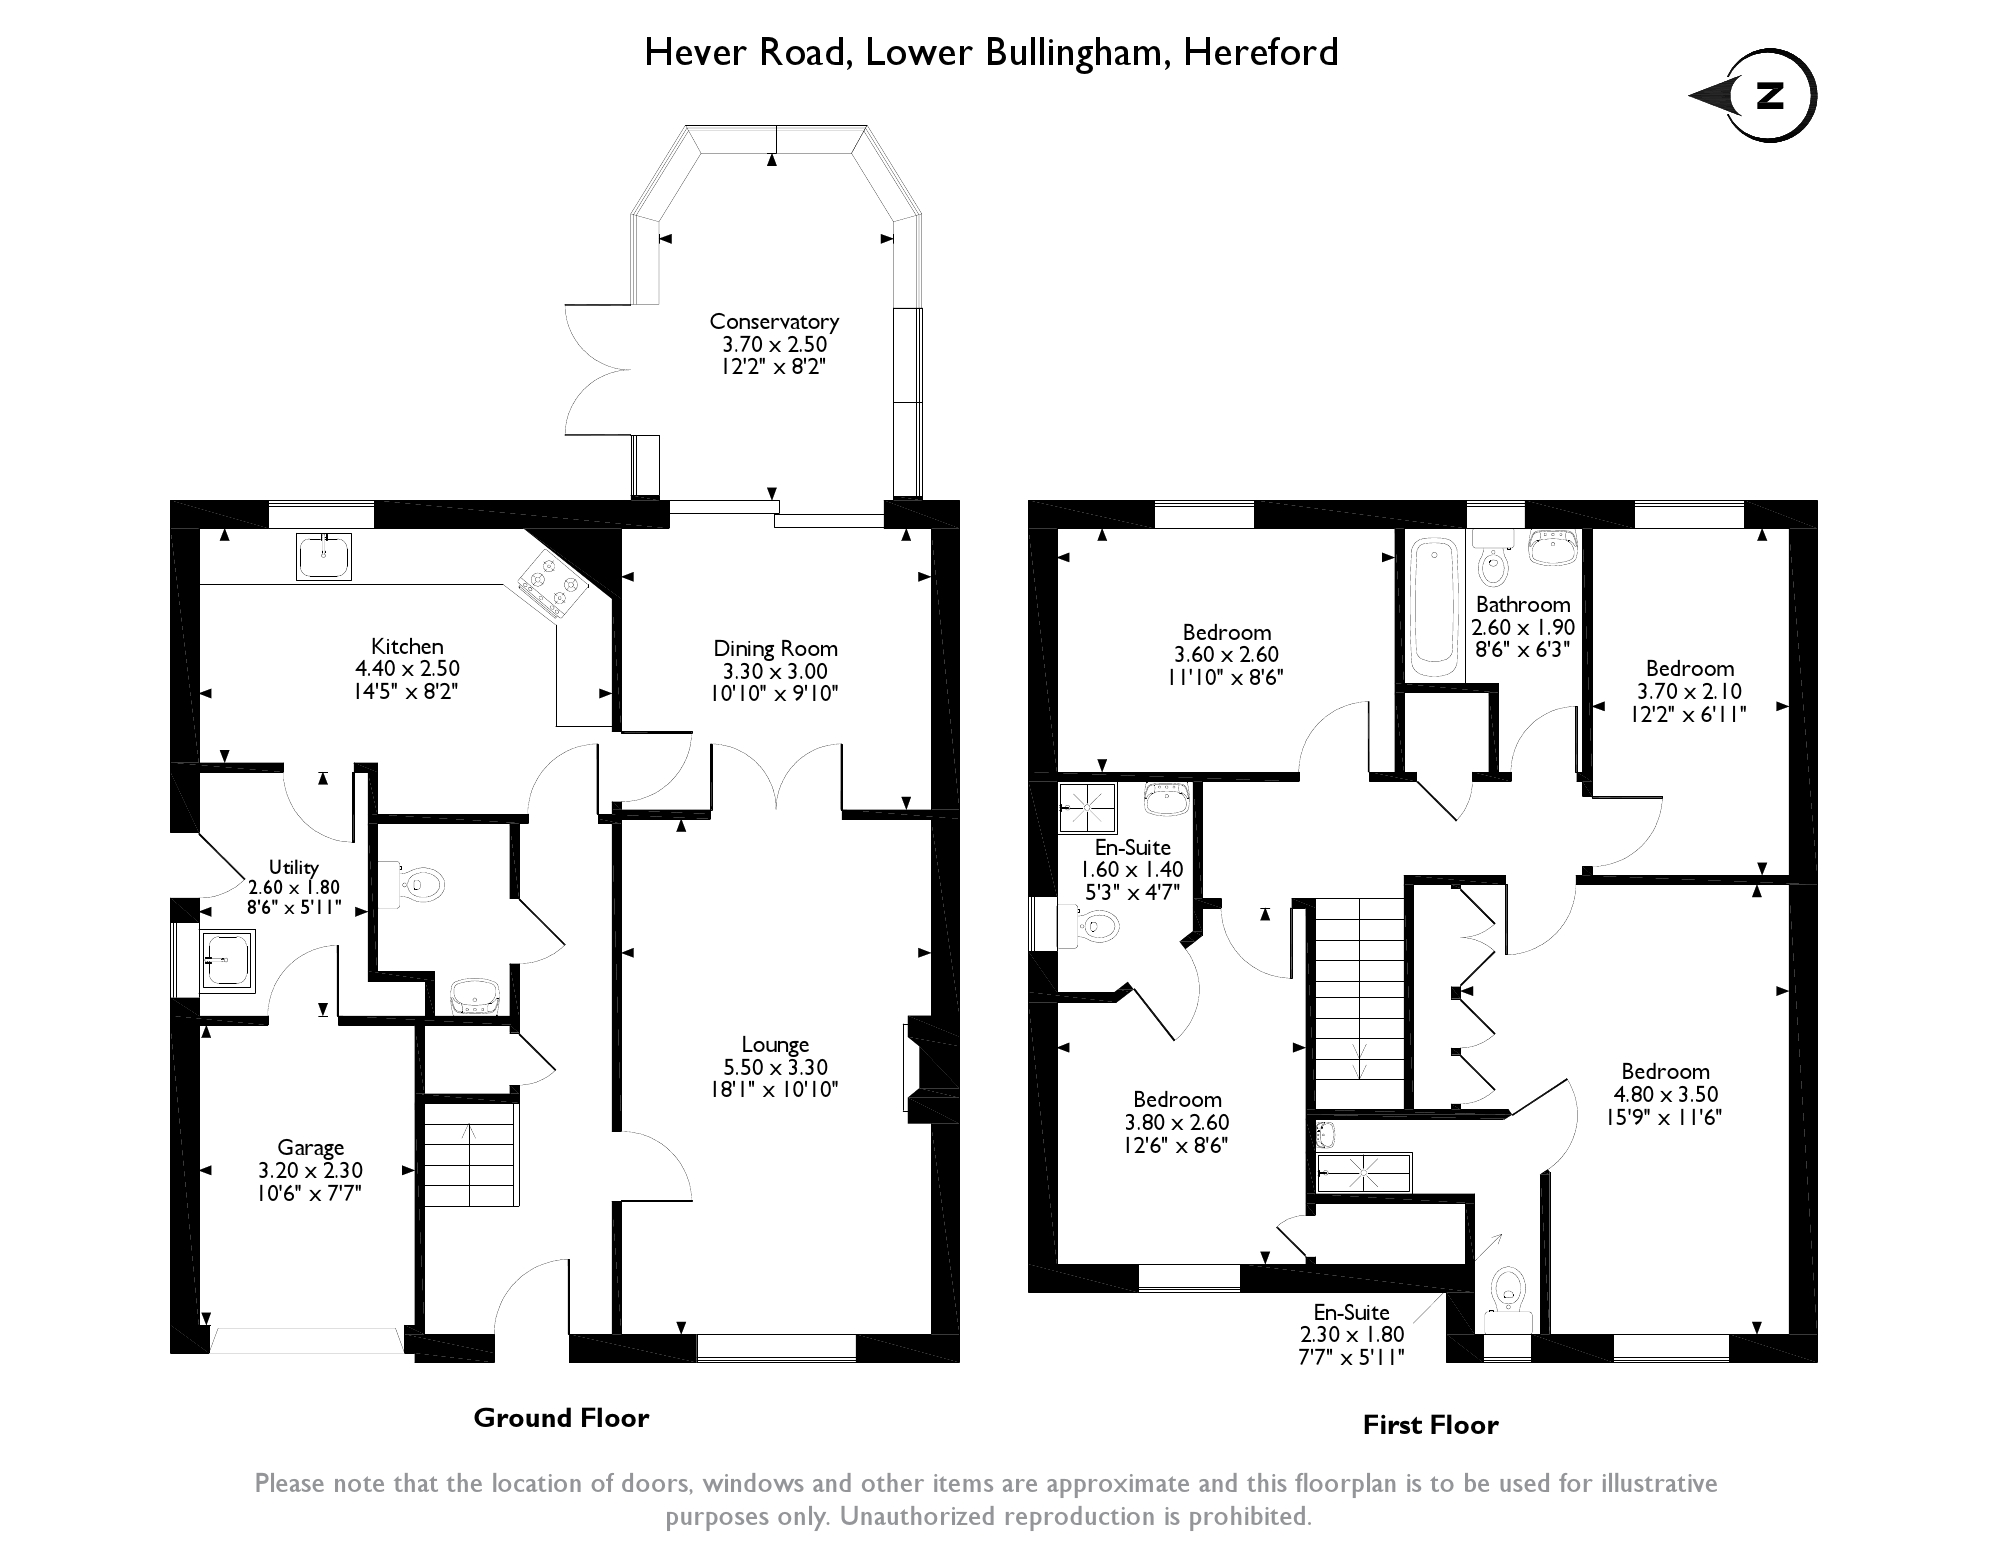 Hever Road, Lower Bullingham, Hereford, floor plan